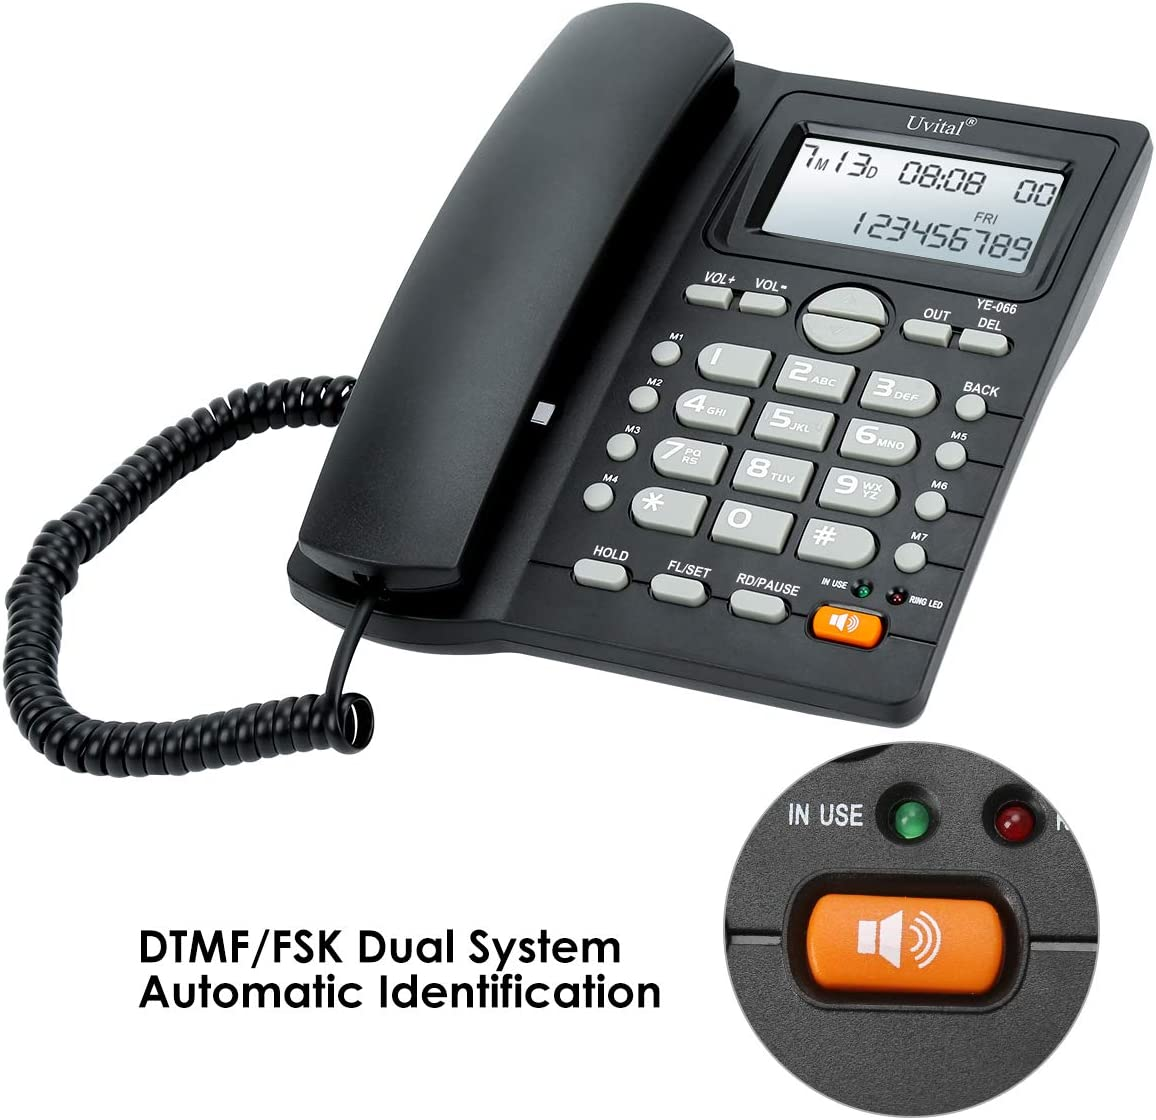 Desktop Corded Telephone, Hands-Free Calling, LCD Display, DTMF/FSK Dual System, Wired Landline Phone for Home/Hotel/Office, Adjustable Volume, Real Time Date&Week Display, Adjustable LCD Brightness